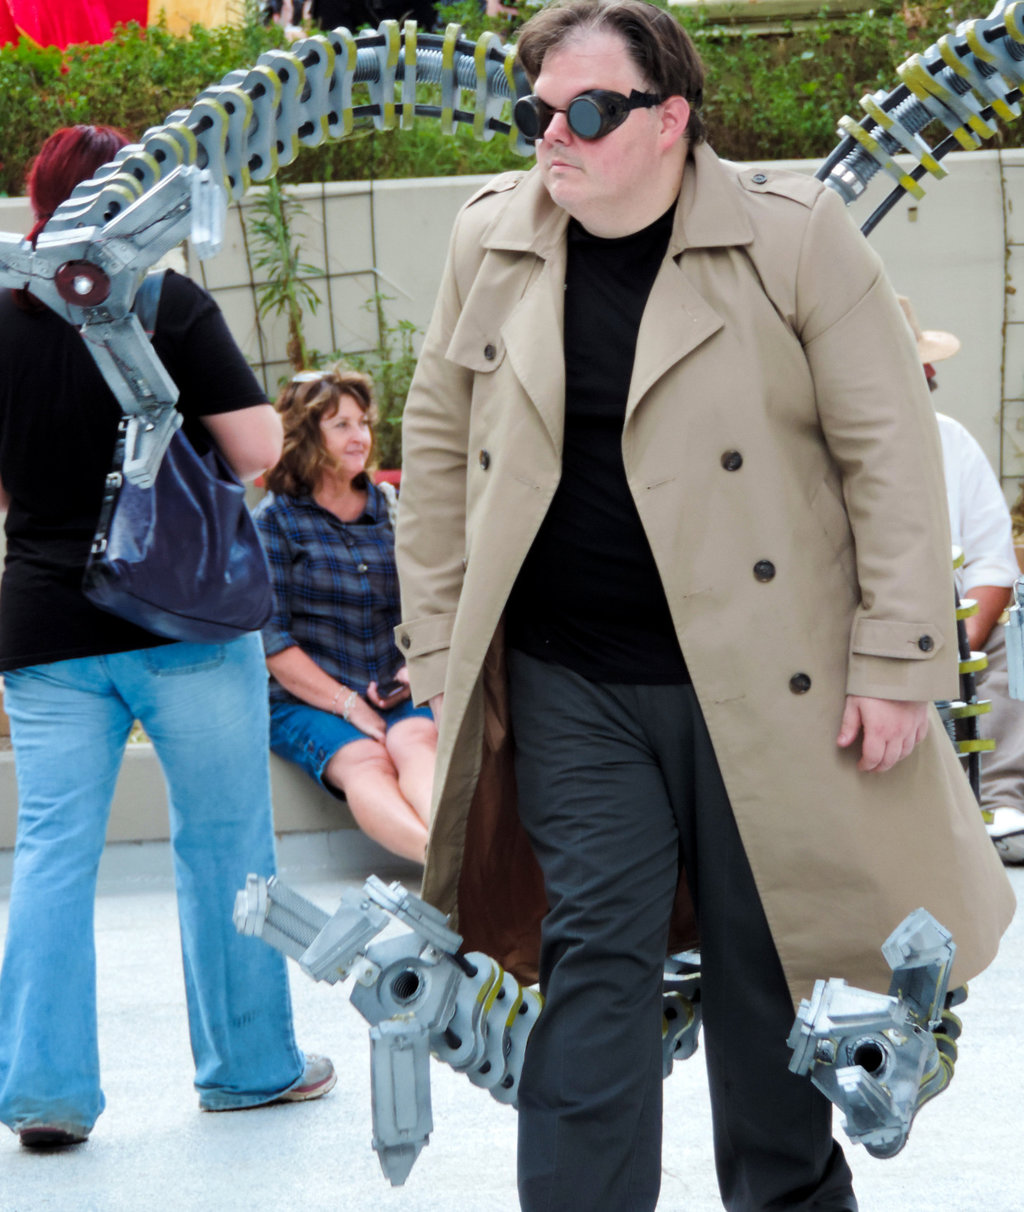 Doctor Octopus from Spiderman